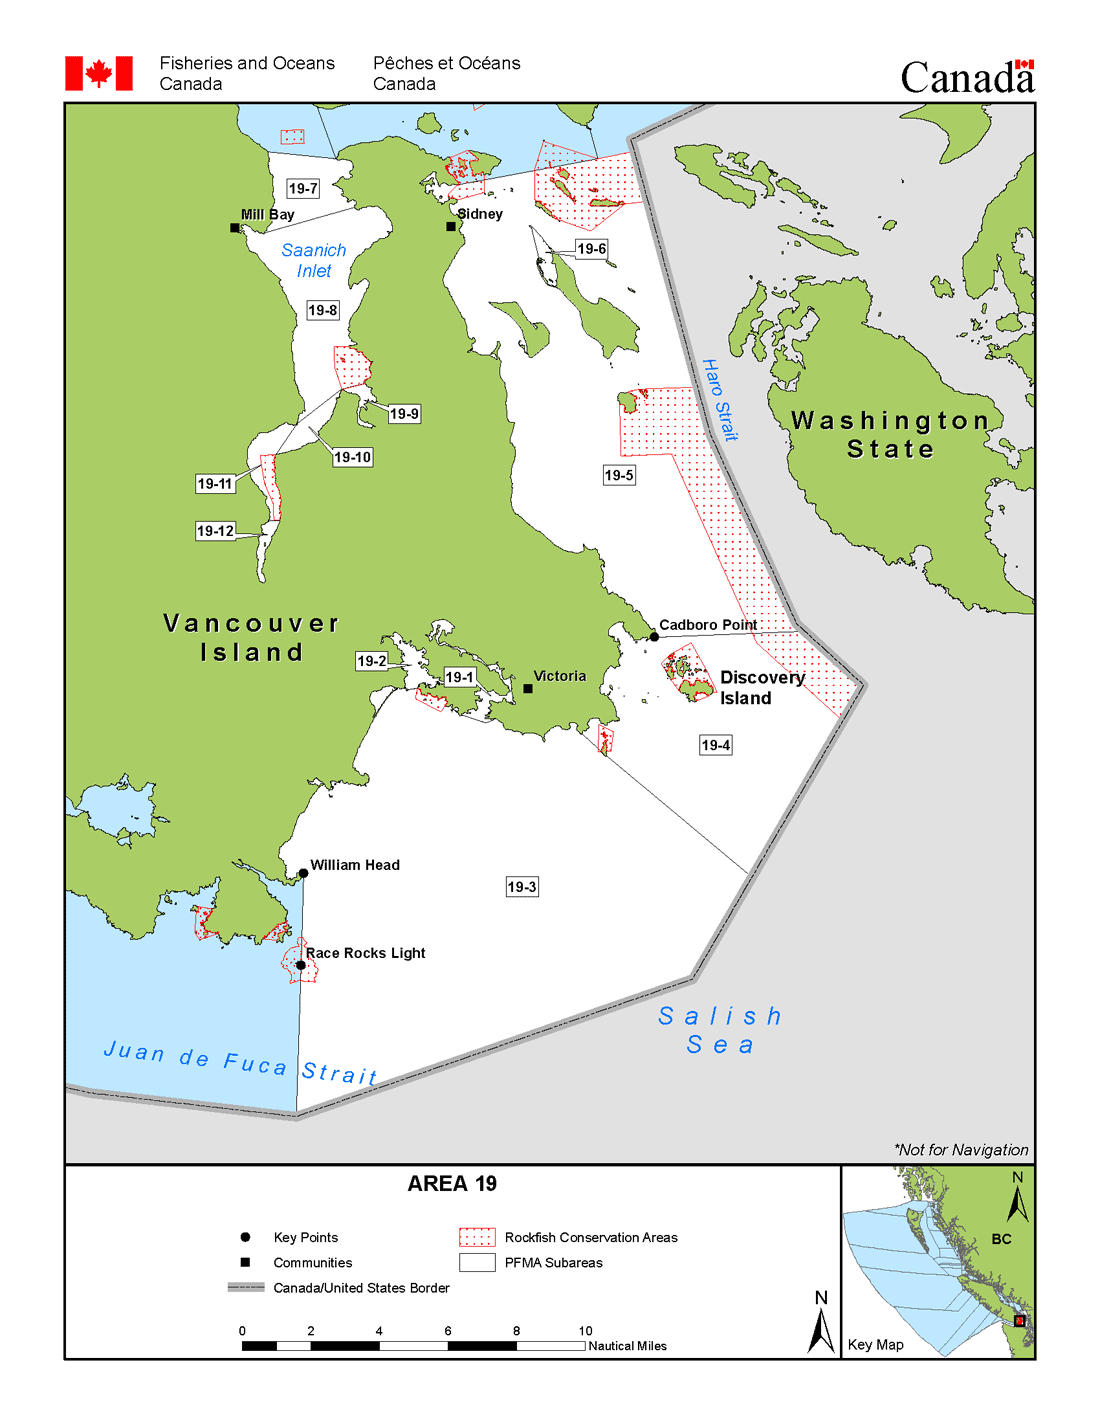 Area 19 (Victoria, Sidney) - Bc Tidal Waters Sport Fishing Guide - Southern California Ocean Fishing Maps